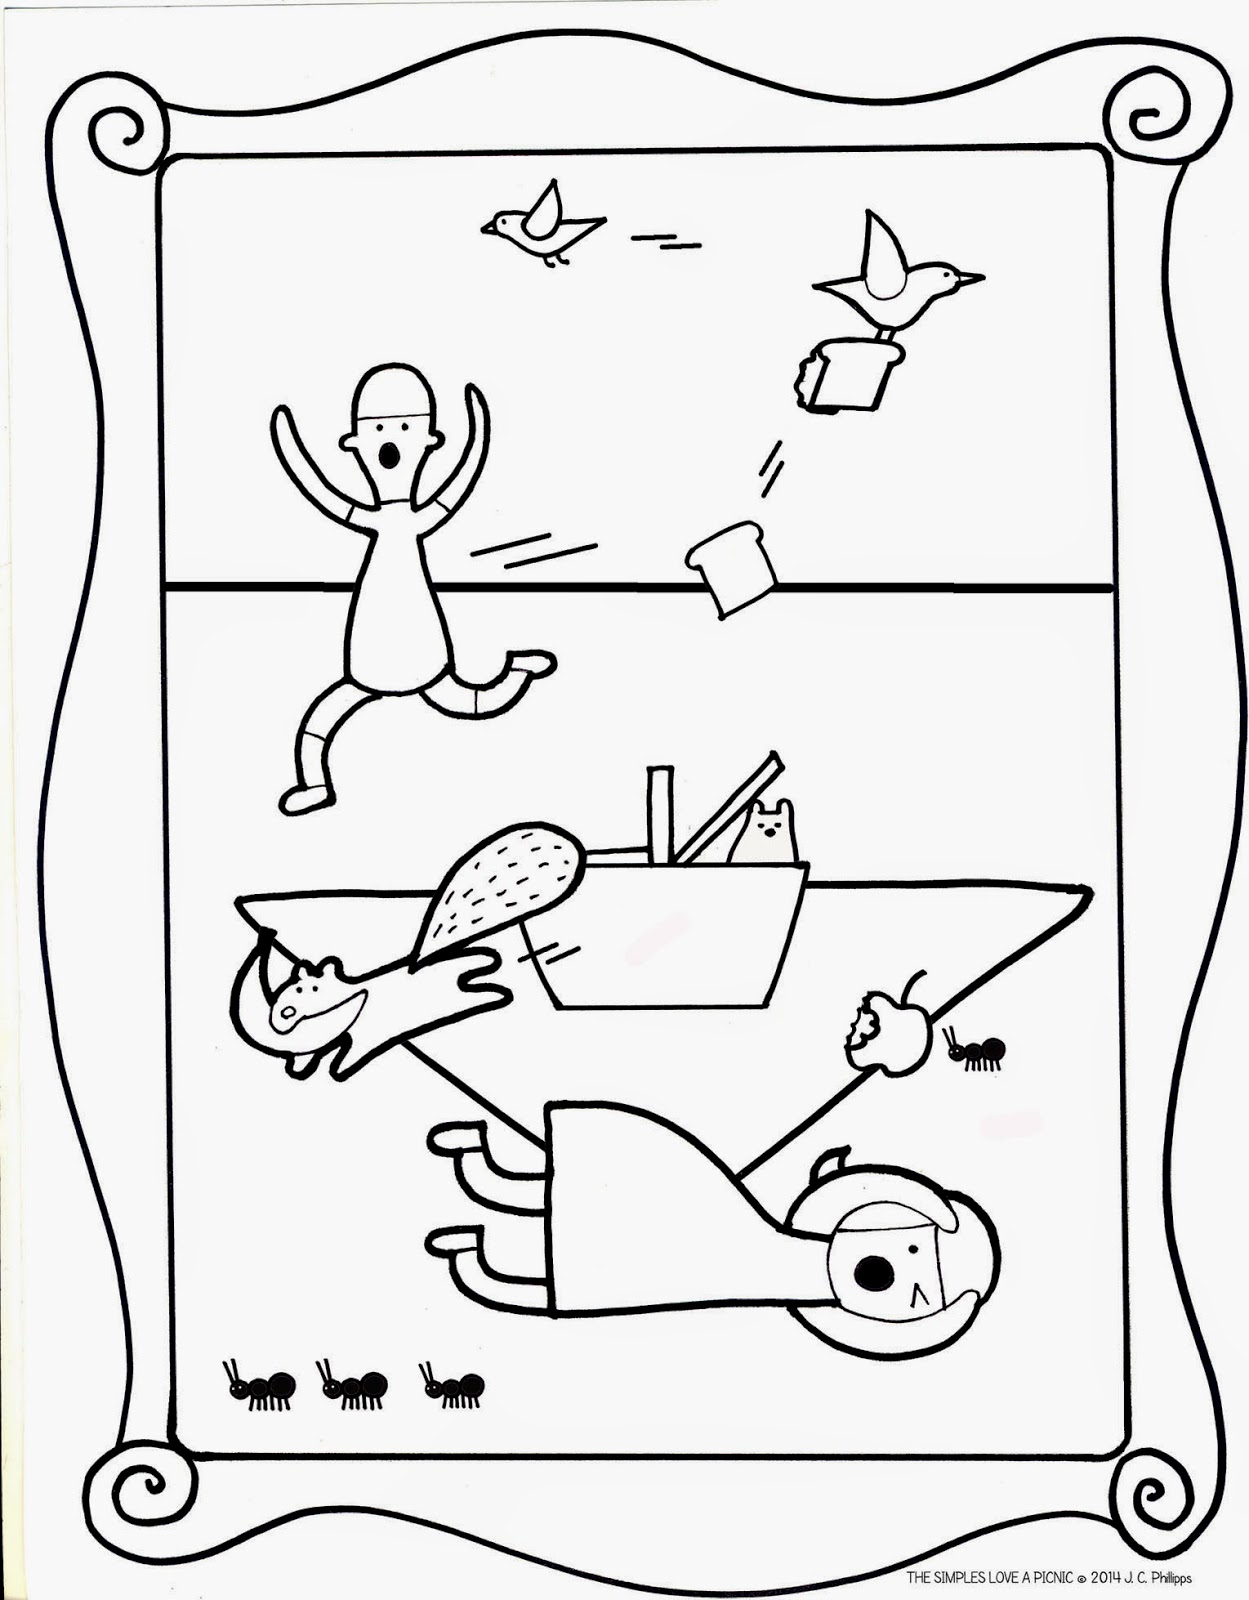 Ninja Woman: The Simples Love Coloring Pages